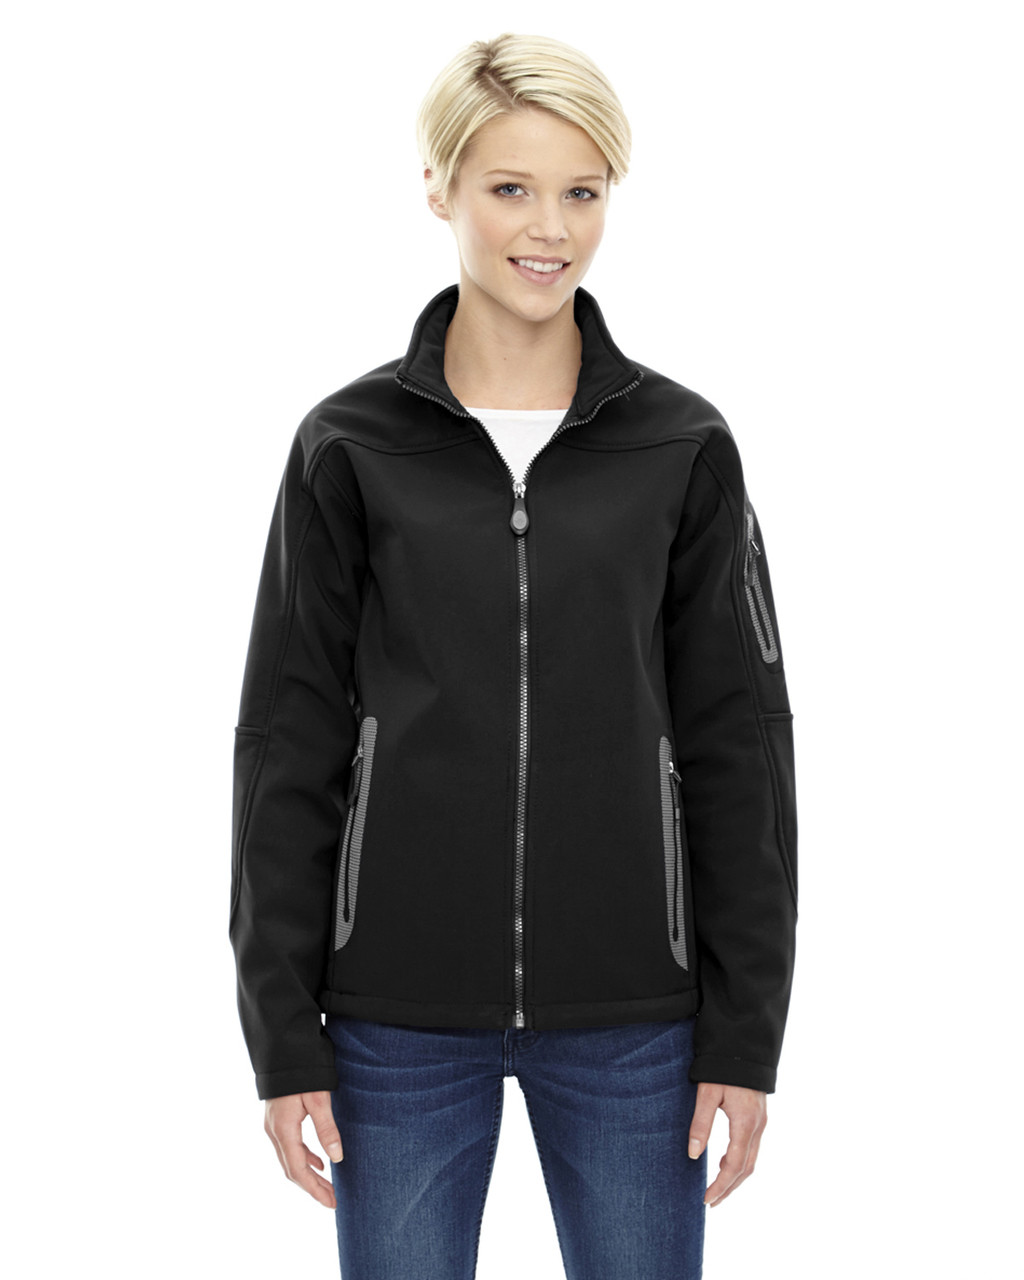 Black - 78060 North End Ladies' Soft Shell Technical Jacket | Blankclothing.ca